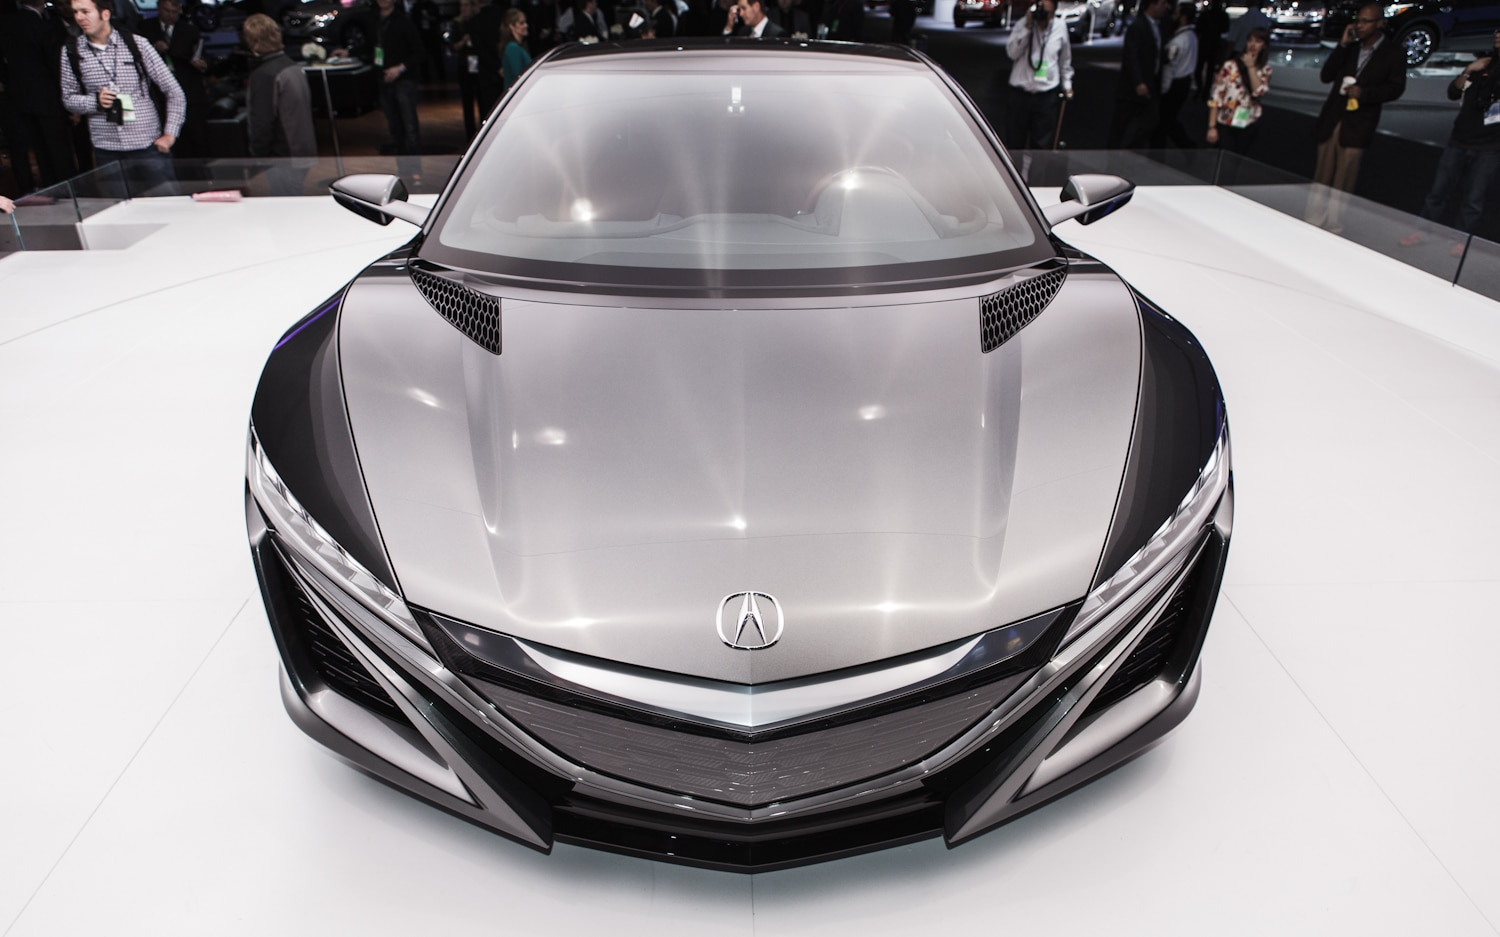 Acura NSX Concept Aerial View1